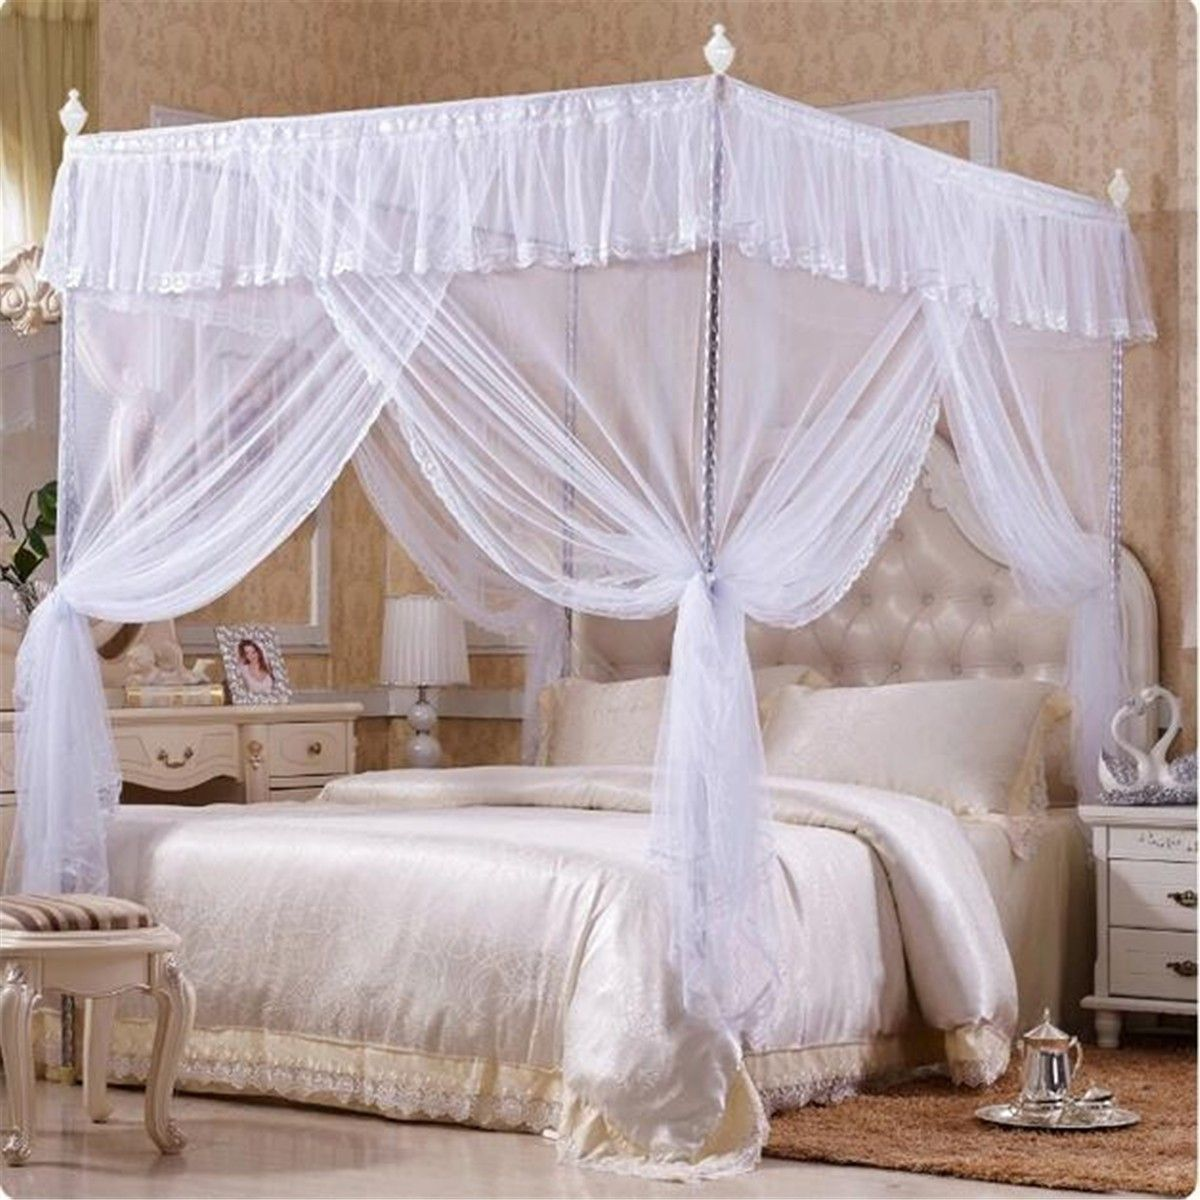 Bed Curtains, Baldachin #stylish_things #decor #bed_curtains  #home_decor_ideas #decorating_ideas #interior_decoration